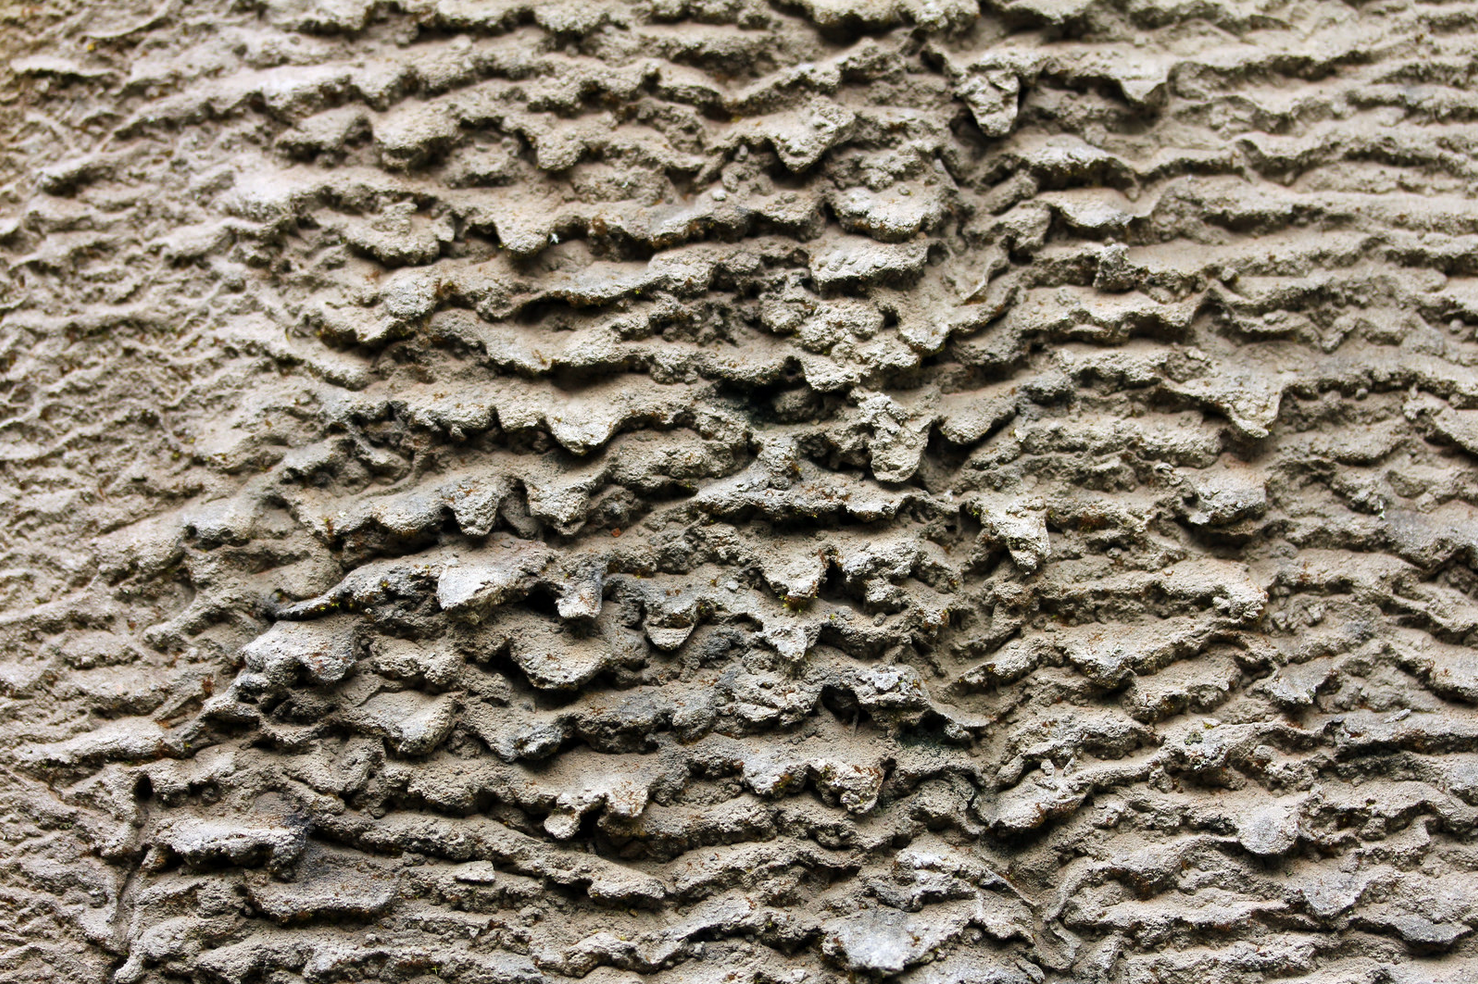 Using Texture As A Subject